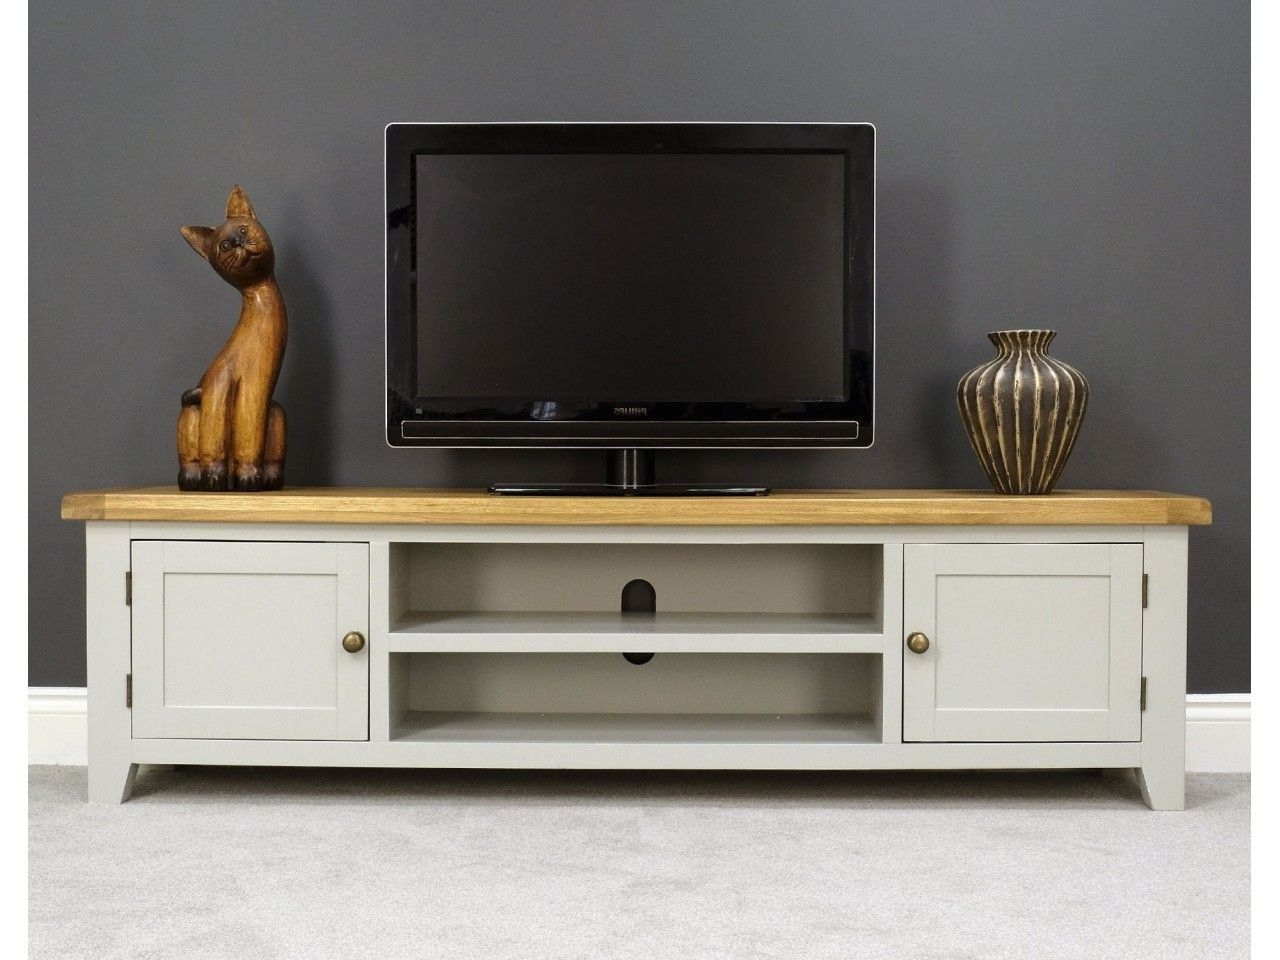 Tv Pertaining To Rustic Grey Tv Stand Media Console Stands For Living Room Bedroom (View 4 of 10)